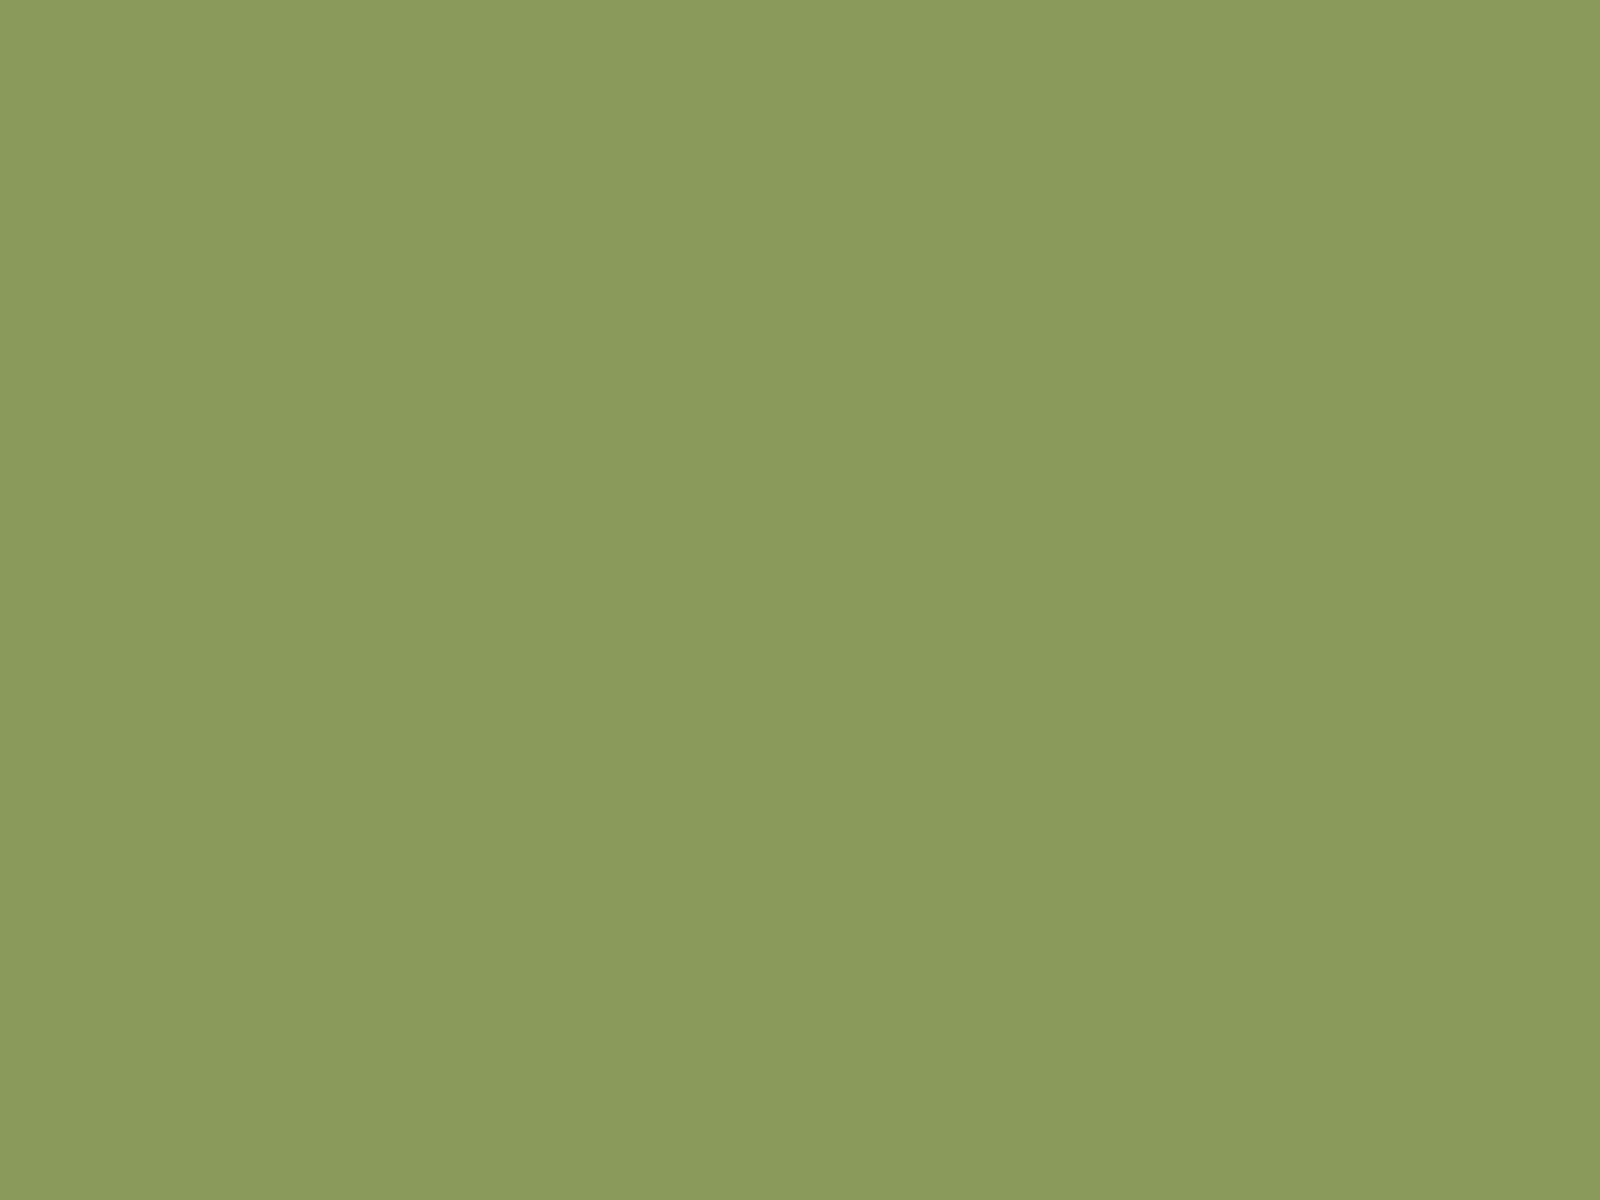 1600x1200 Moss Green Solid Color Background